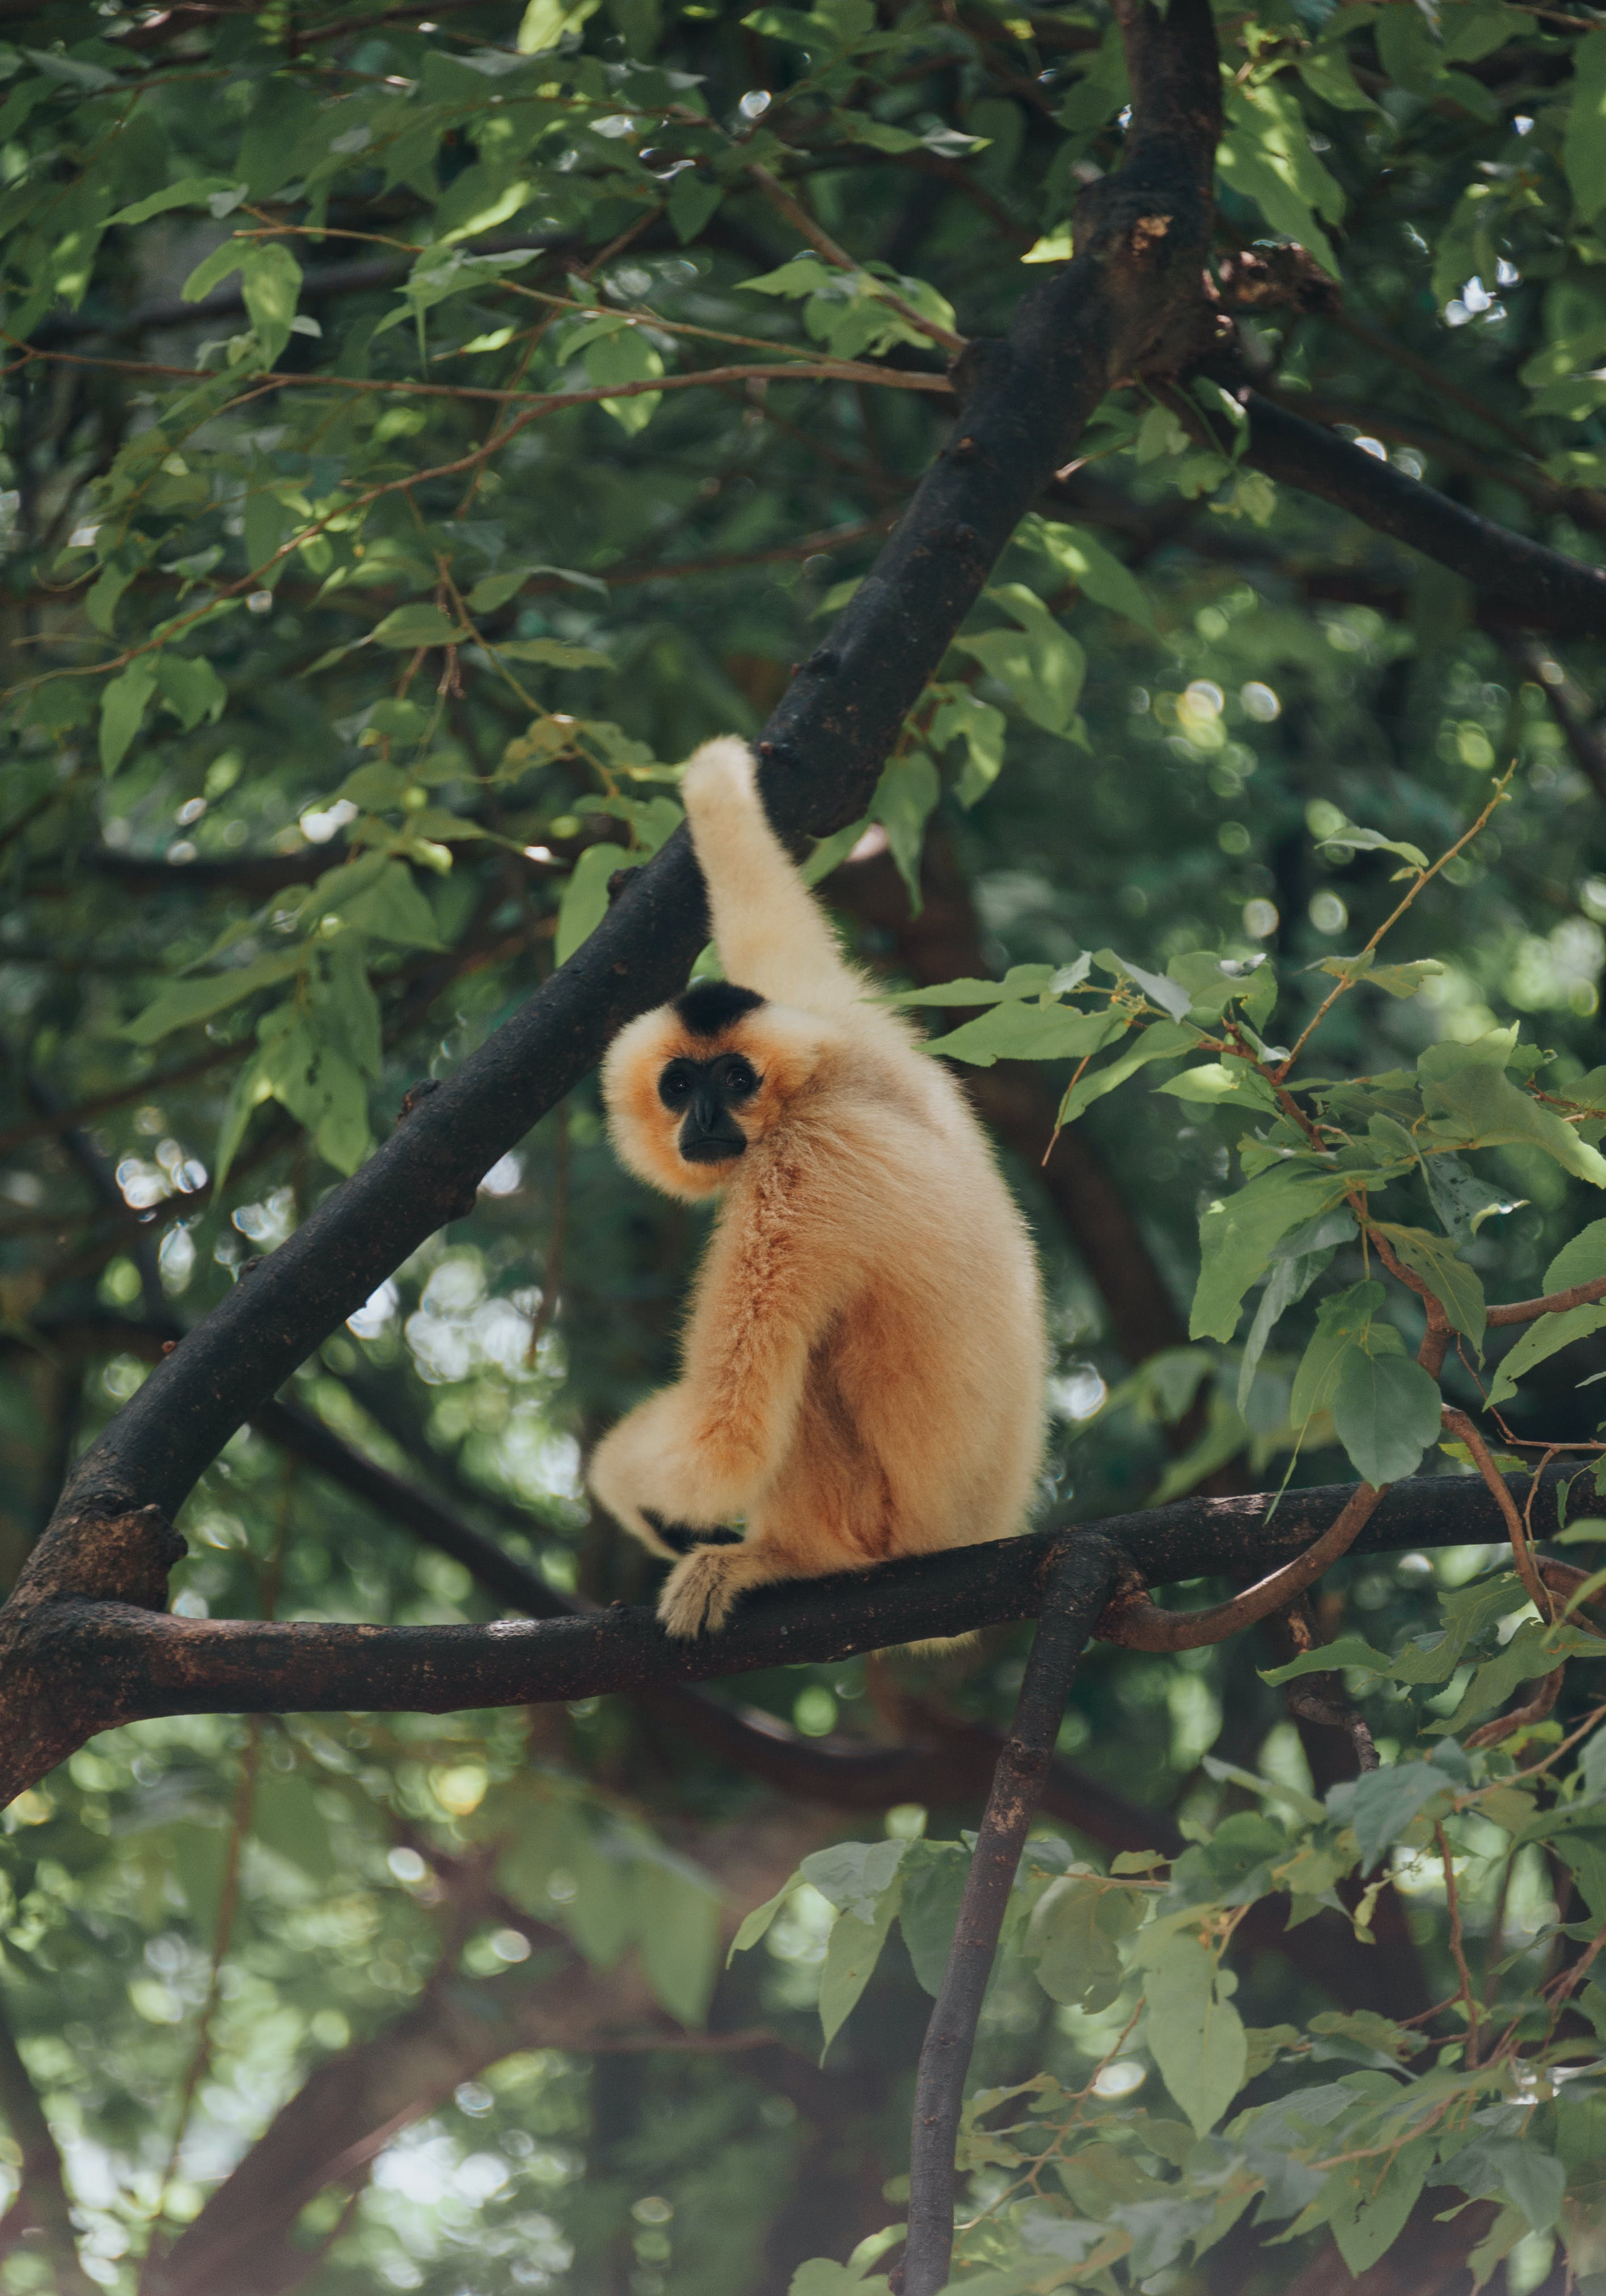 Brown Primate Sitting on Tree Branch